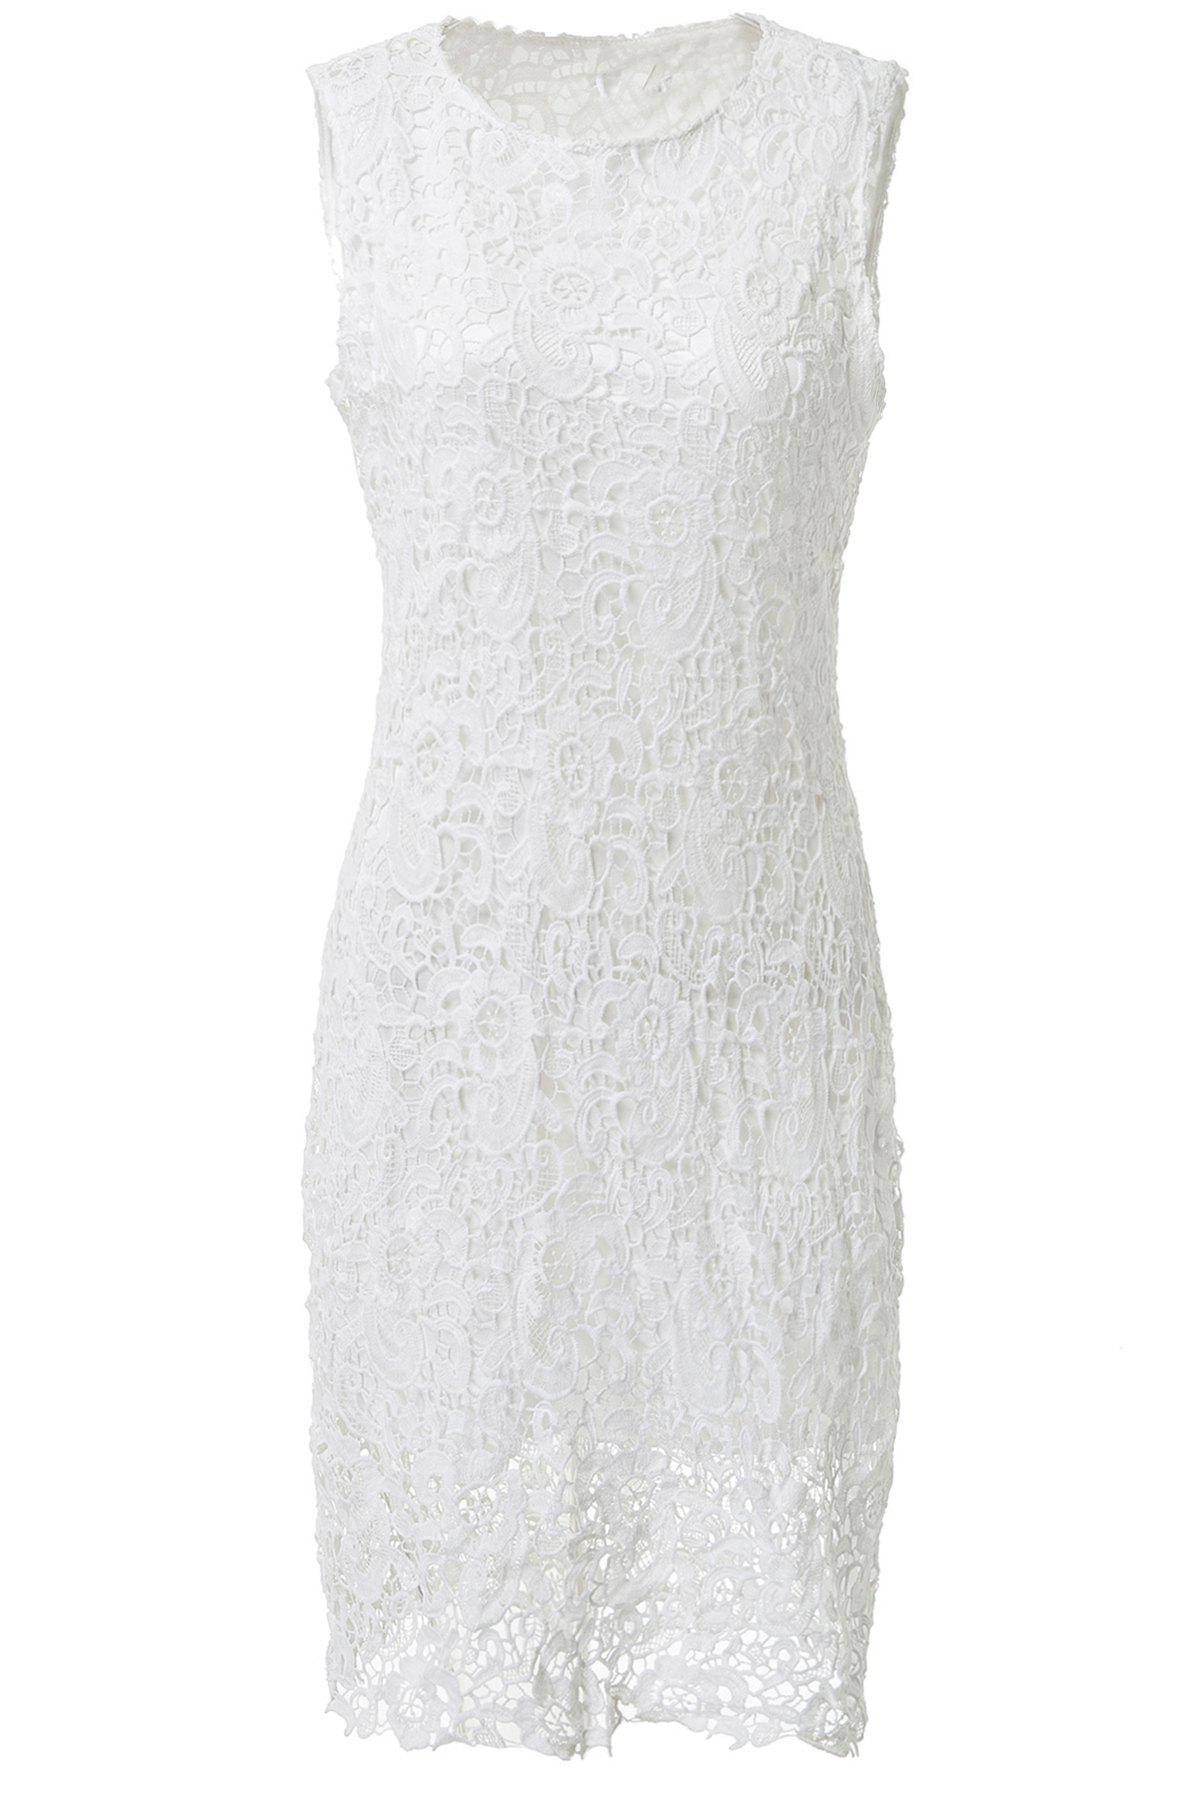 Sexy Round Neck Sleeveless Cut Out Solid Color Womens Lace DressWomen<br><br><br>Size: XL<br>Color: WHITE